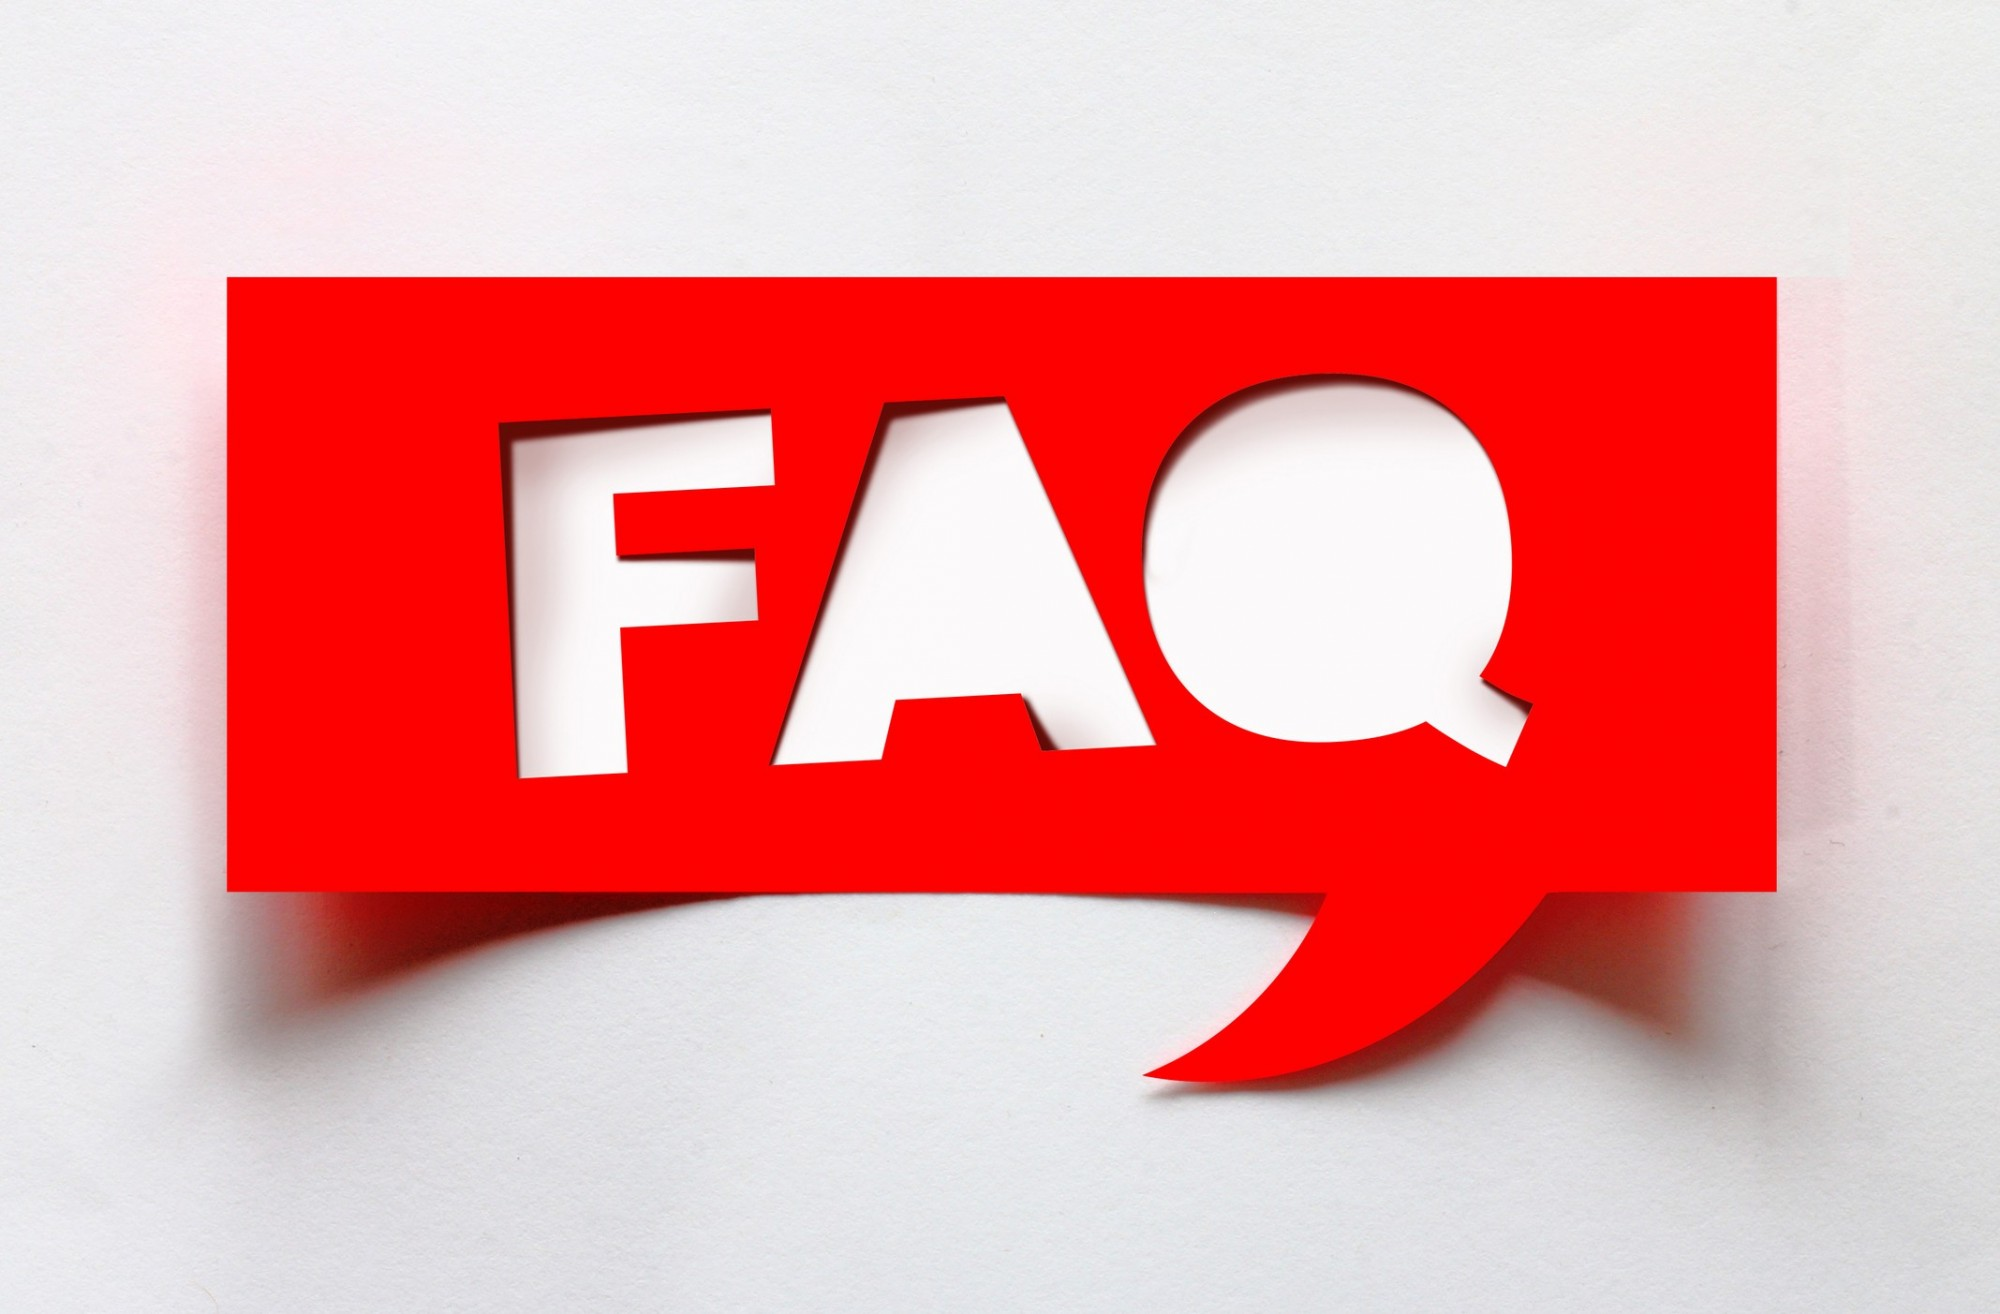 The letters F A Q have been cut out of a red piece of card which is in the shape of a speech bubble